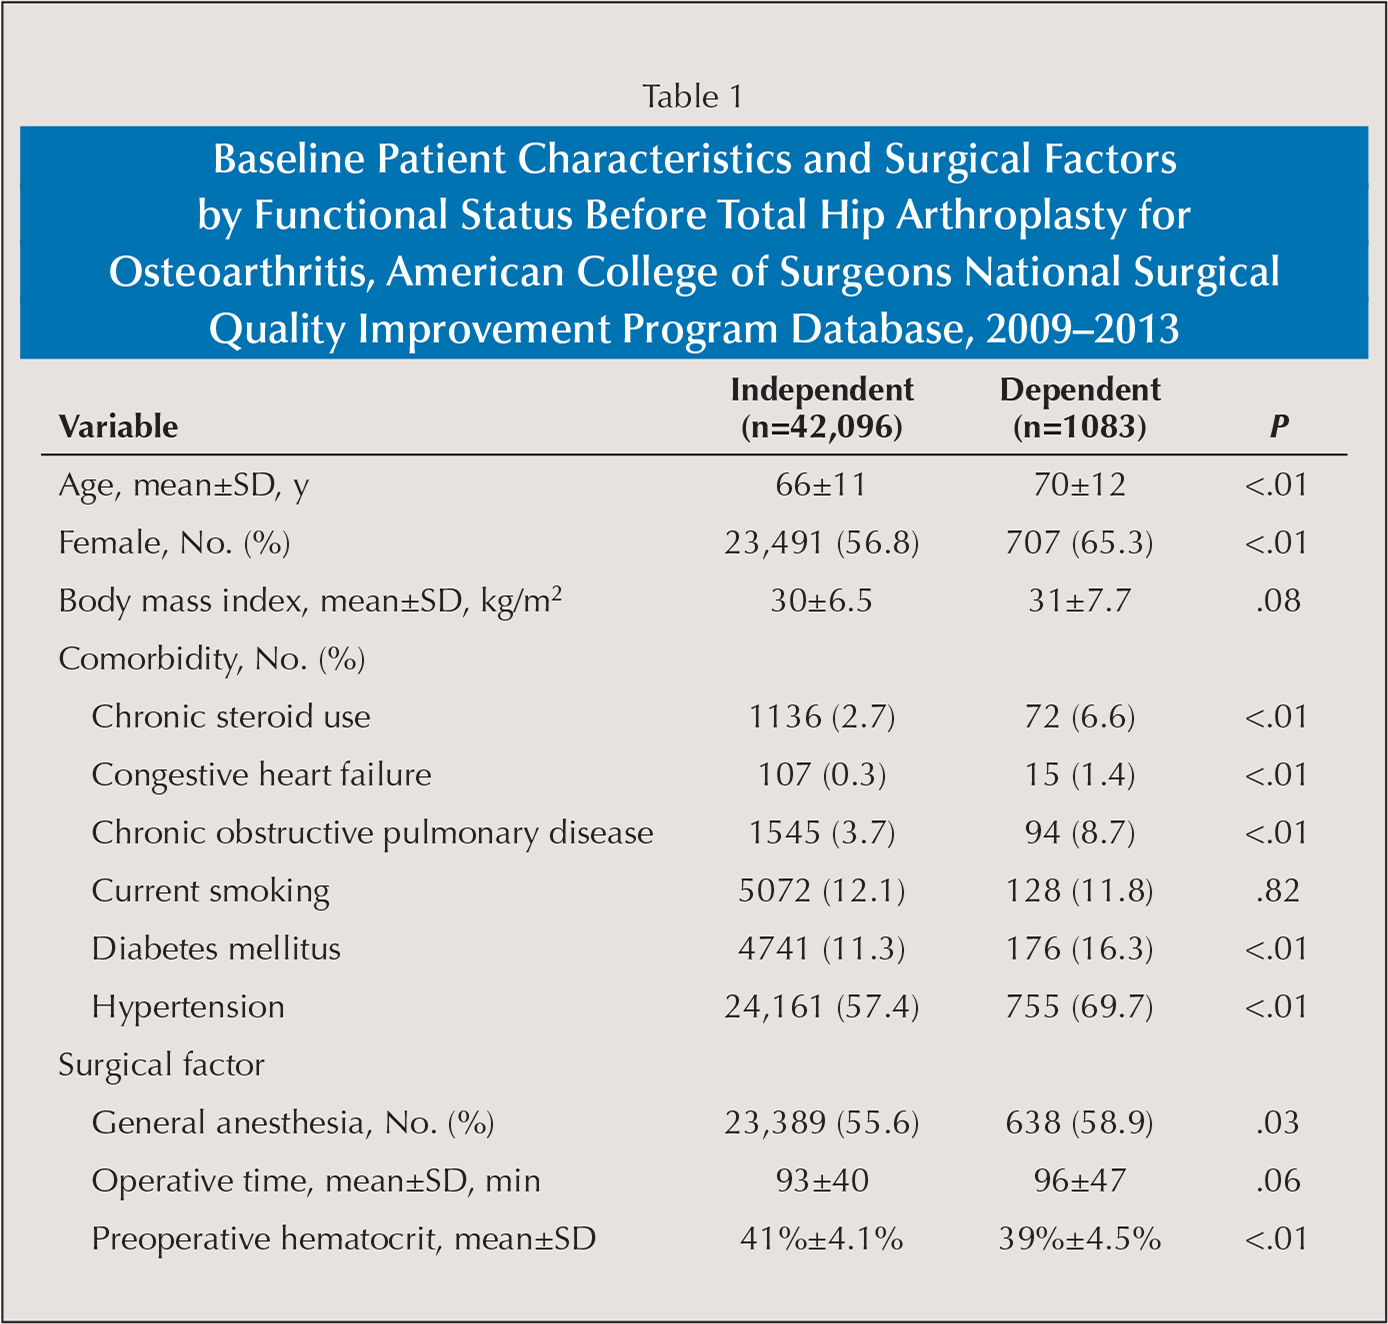 Baseline Patient Characteristics and Surgical Factors by Functional Status Before Total Hip Arthroplasty for Osteoarthritis, American College of Surgeons National Surgical Quality Improvement Program Database, 2009–2013